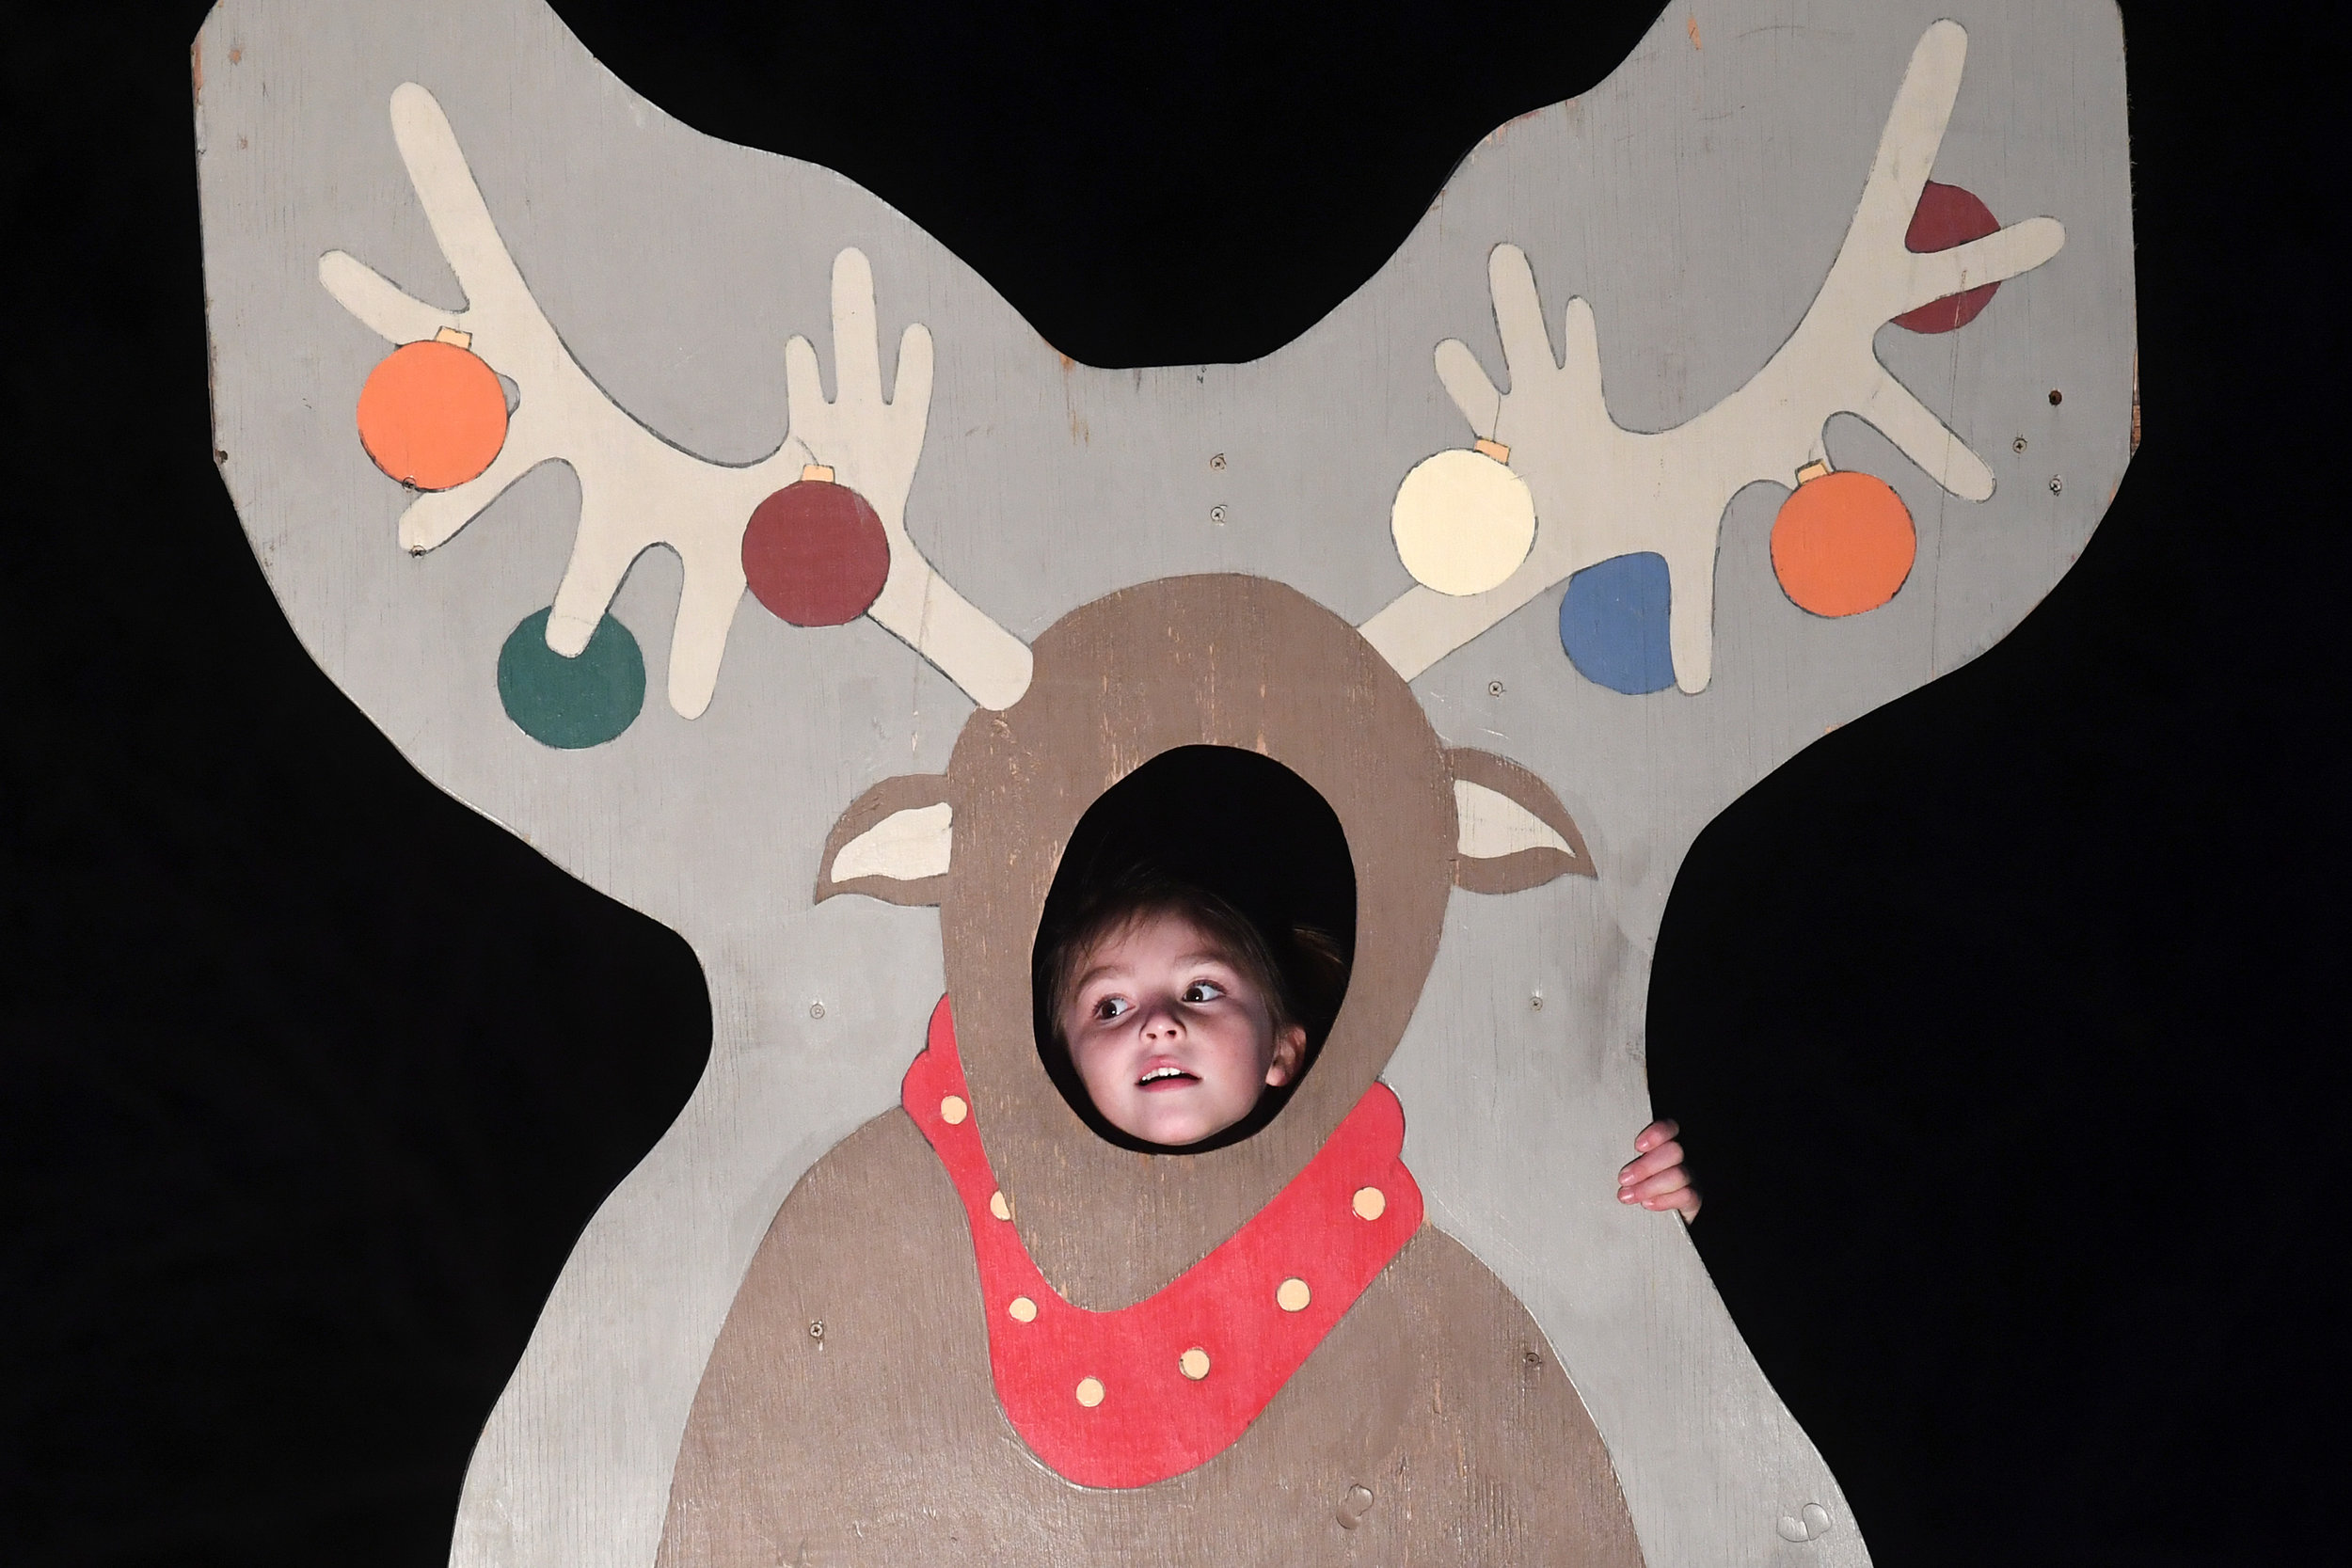 A child looks through a reindeer cutout at Stephen C. Beachy Central Park during the City of College Station's Christmas in the Park on Friday, Nov. 30, 2018. Admission to the event was free and activities included hayrides, live entertainment, a petting zoo, inflatables, snow slides and photos with Santa. (Laura McKenzie/The Eagle)